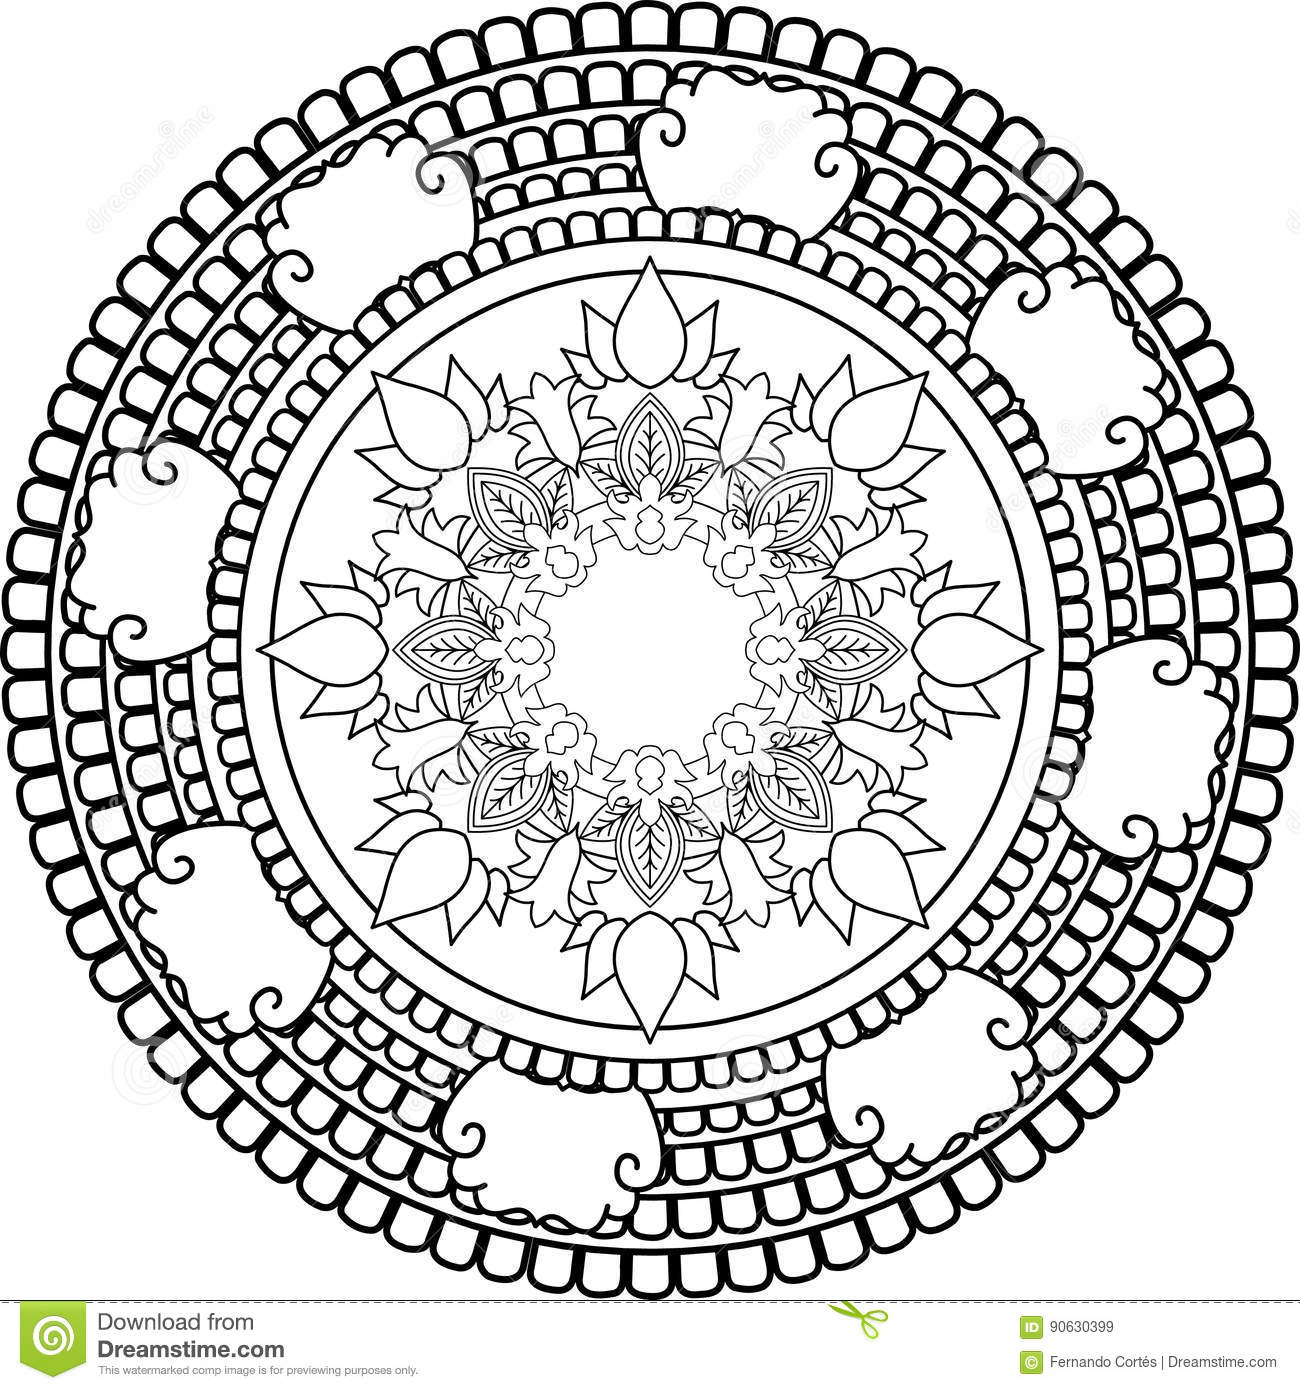 Meditation Mandalas Drawing With Coloring Lines On White